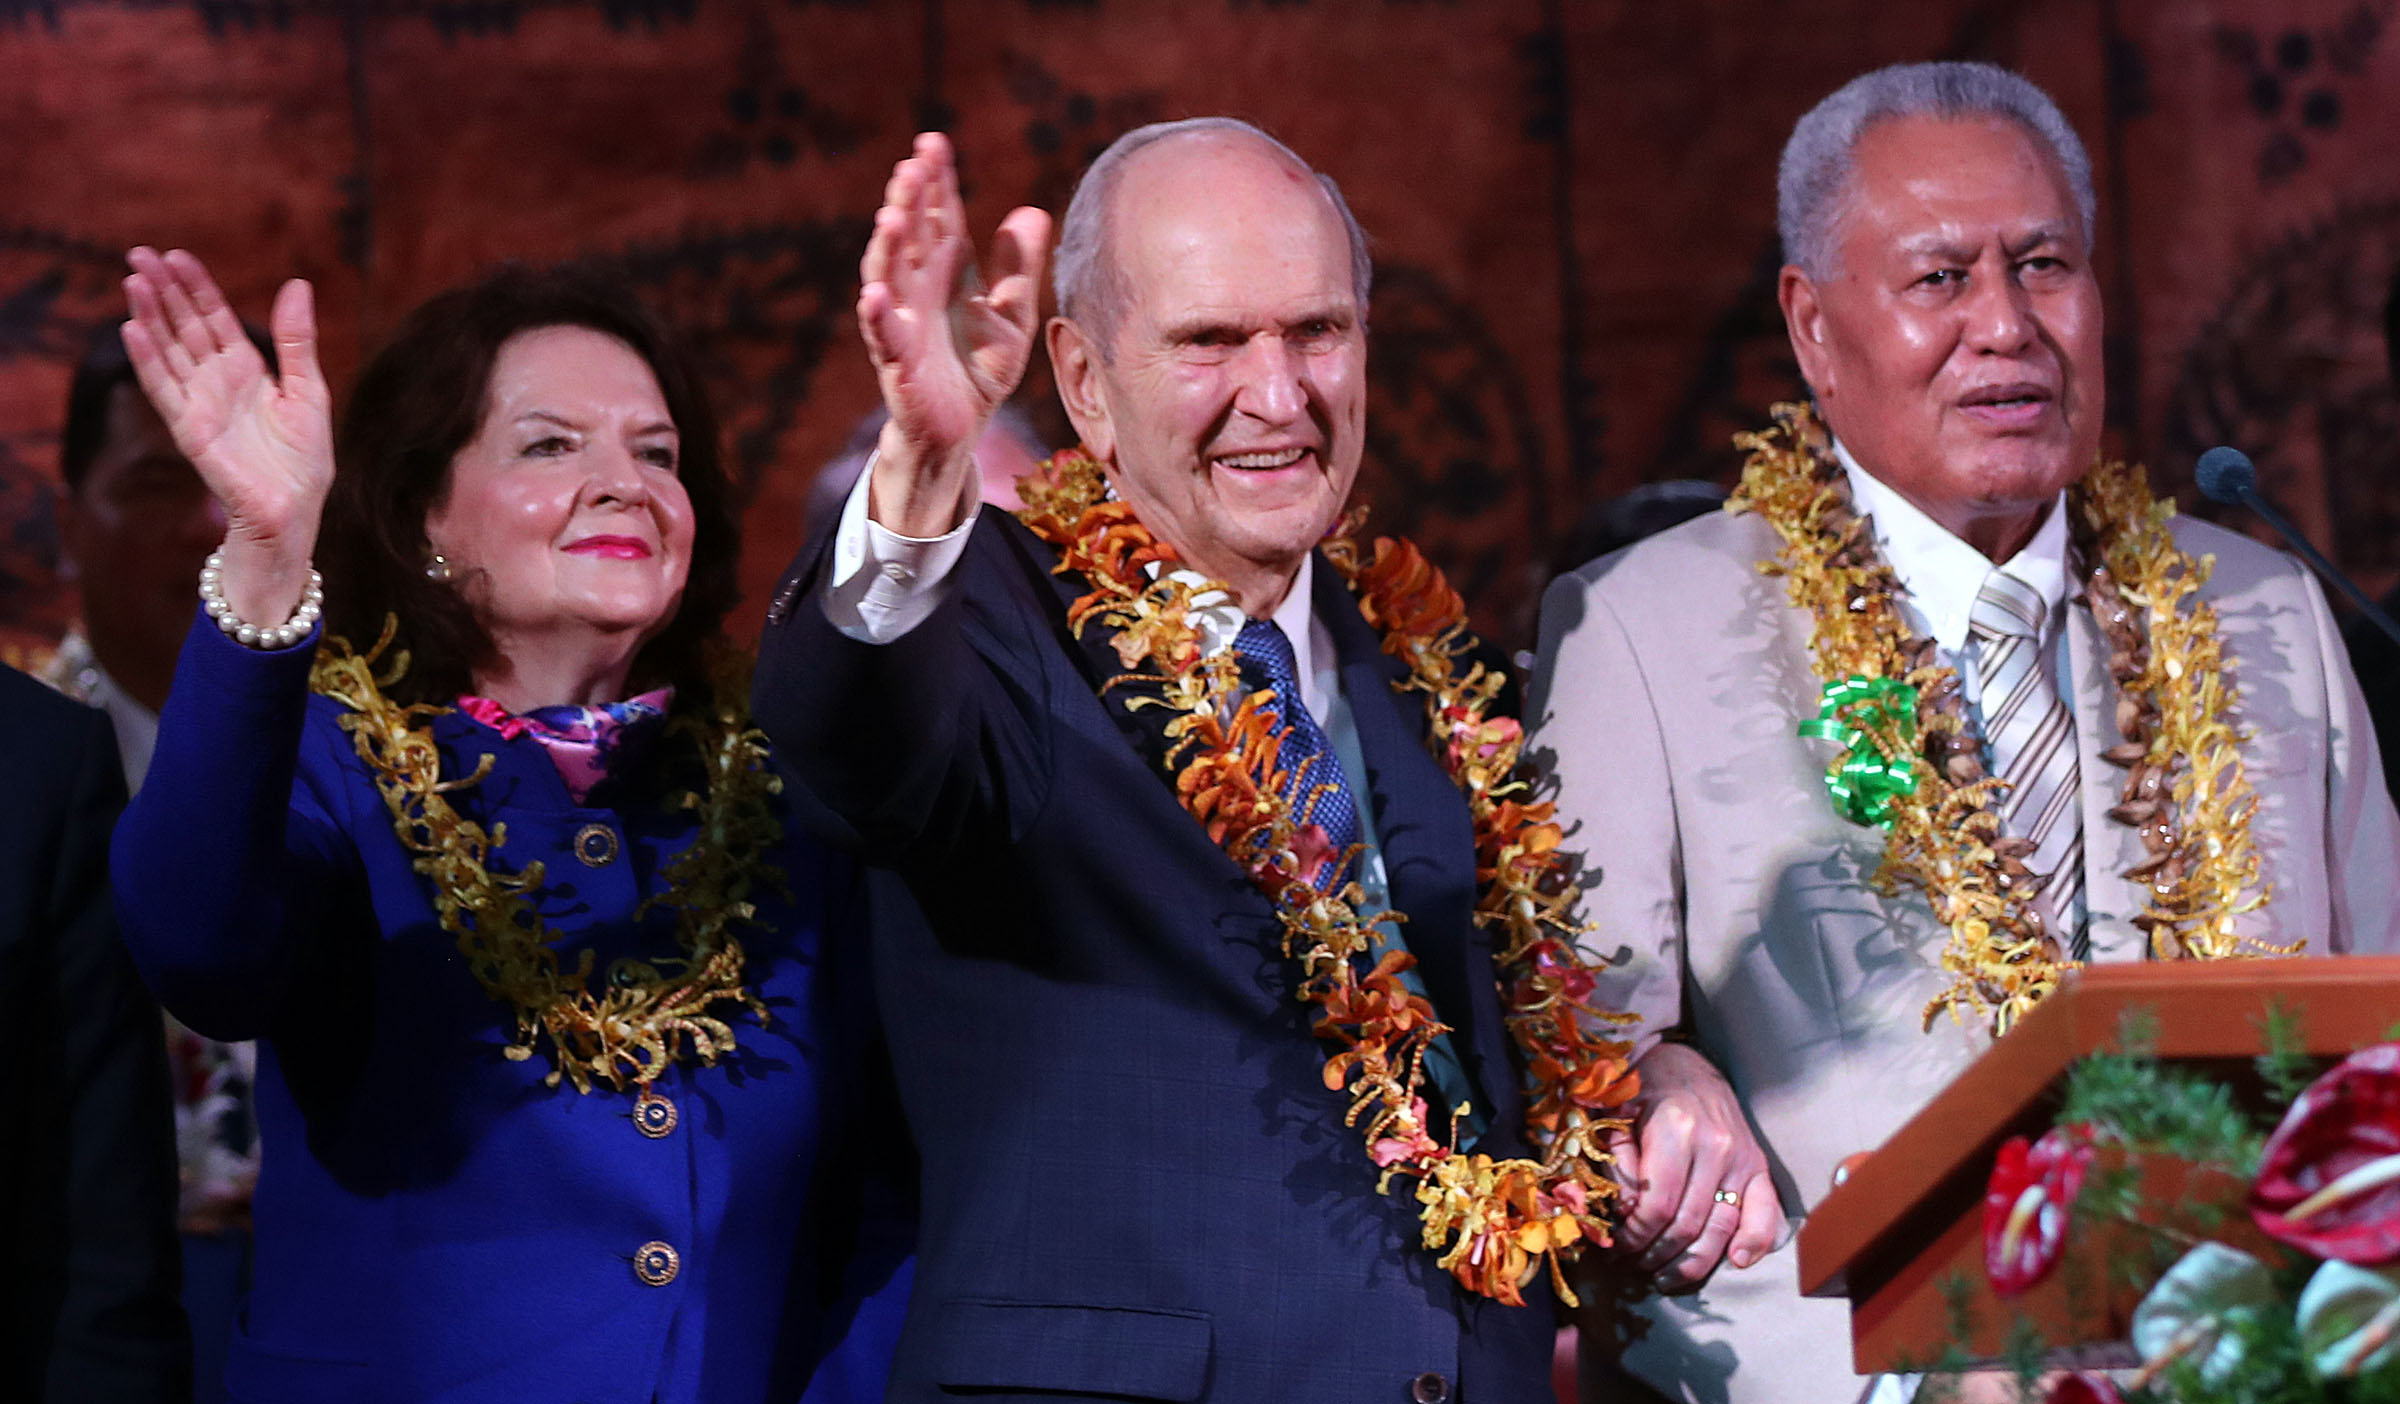 President Russell M. Nelson of The Church of Jesus Christ of Latter-day Saints, center, and his wife, Sister Wendy Nelson, wave to those in attendance following a devotional in Apia, Samoa on Saturday, May 18, 2019. At right is His Highness Tuimaleali'ifano Va'aleto'a Eti Sualauvi II, Samoa Head of State.